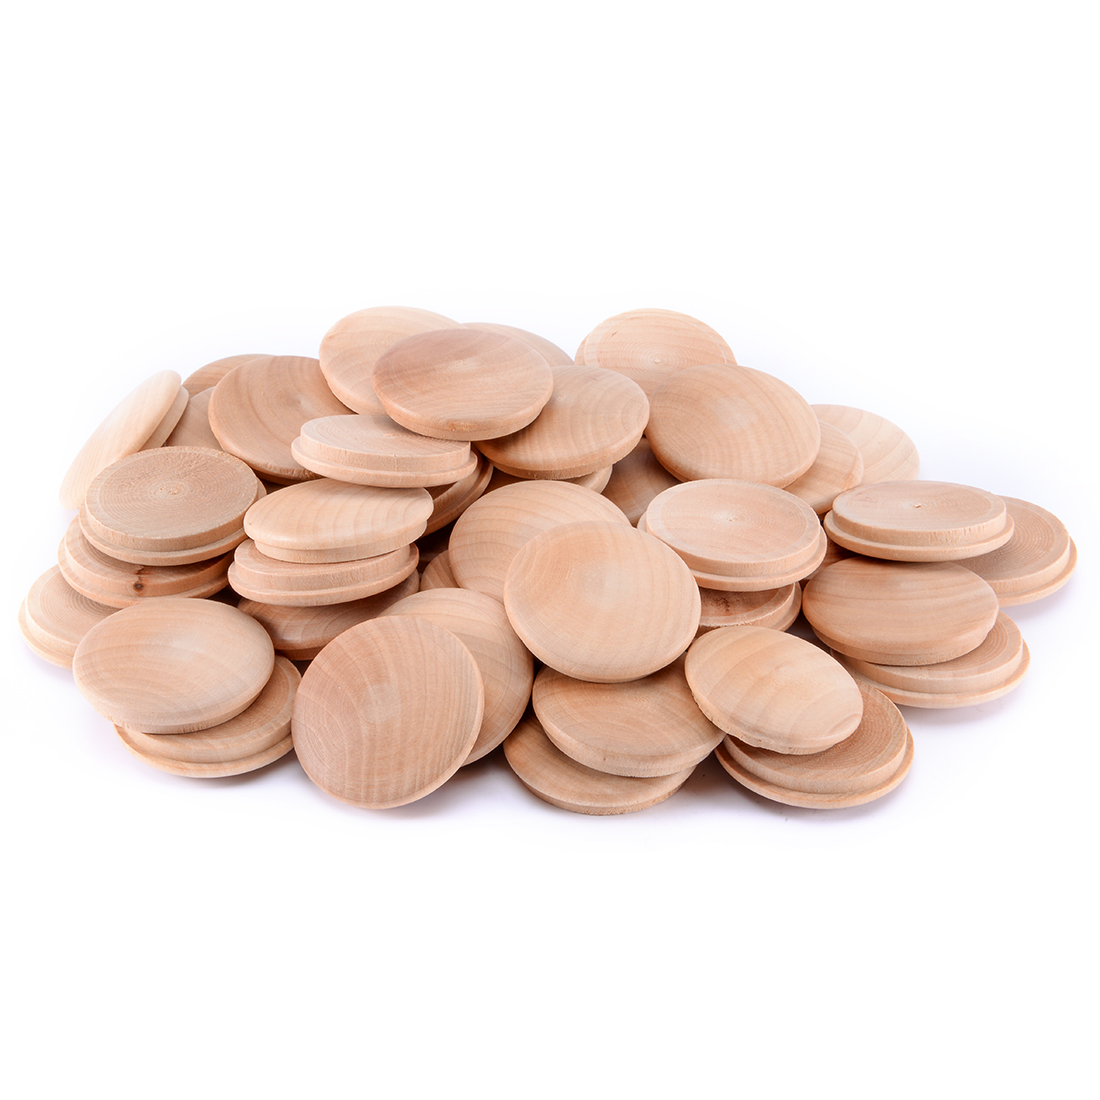 40mm 1-3/5 Inch Dia Schima Superba Wood Furniture Button Top 50pcs